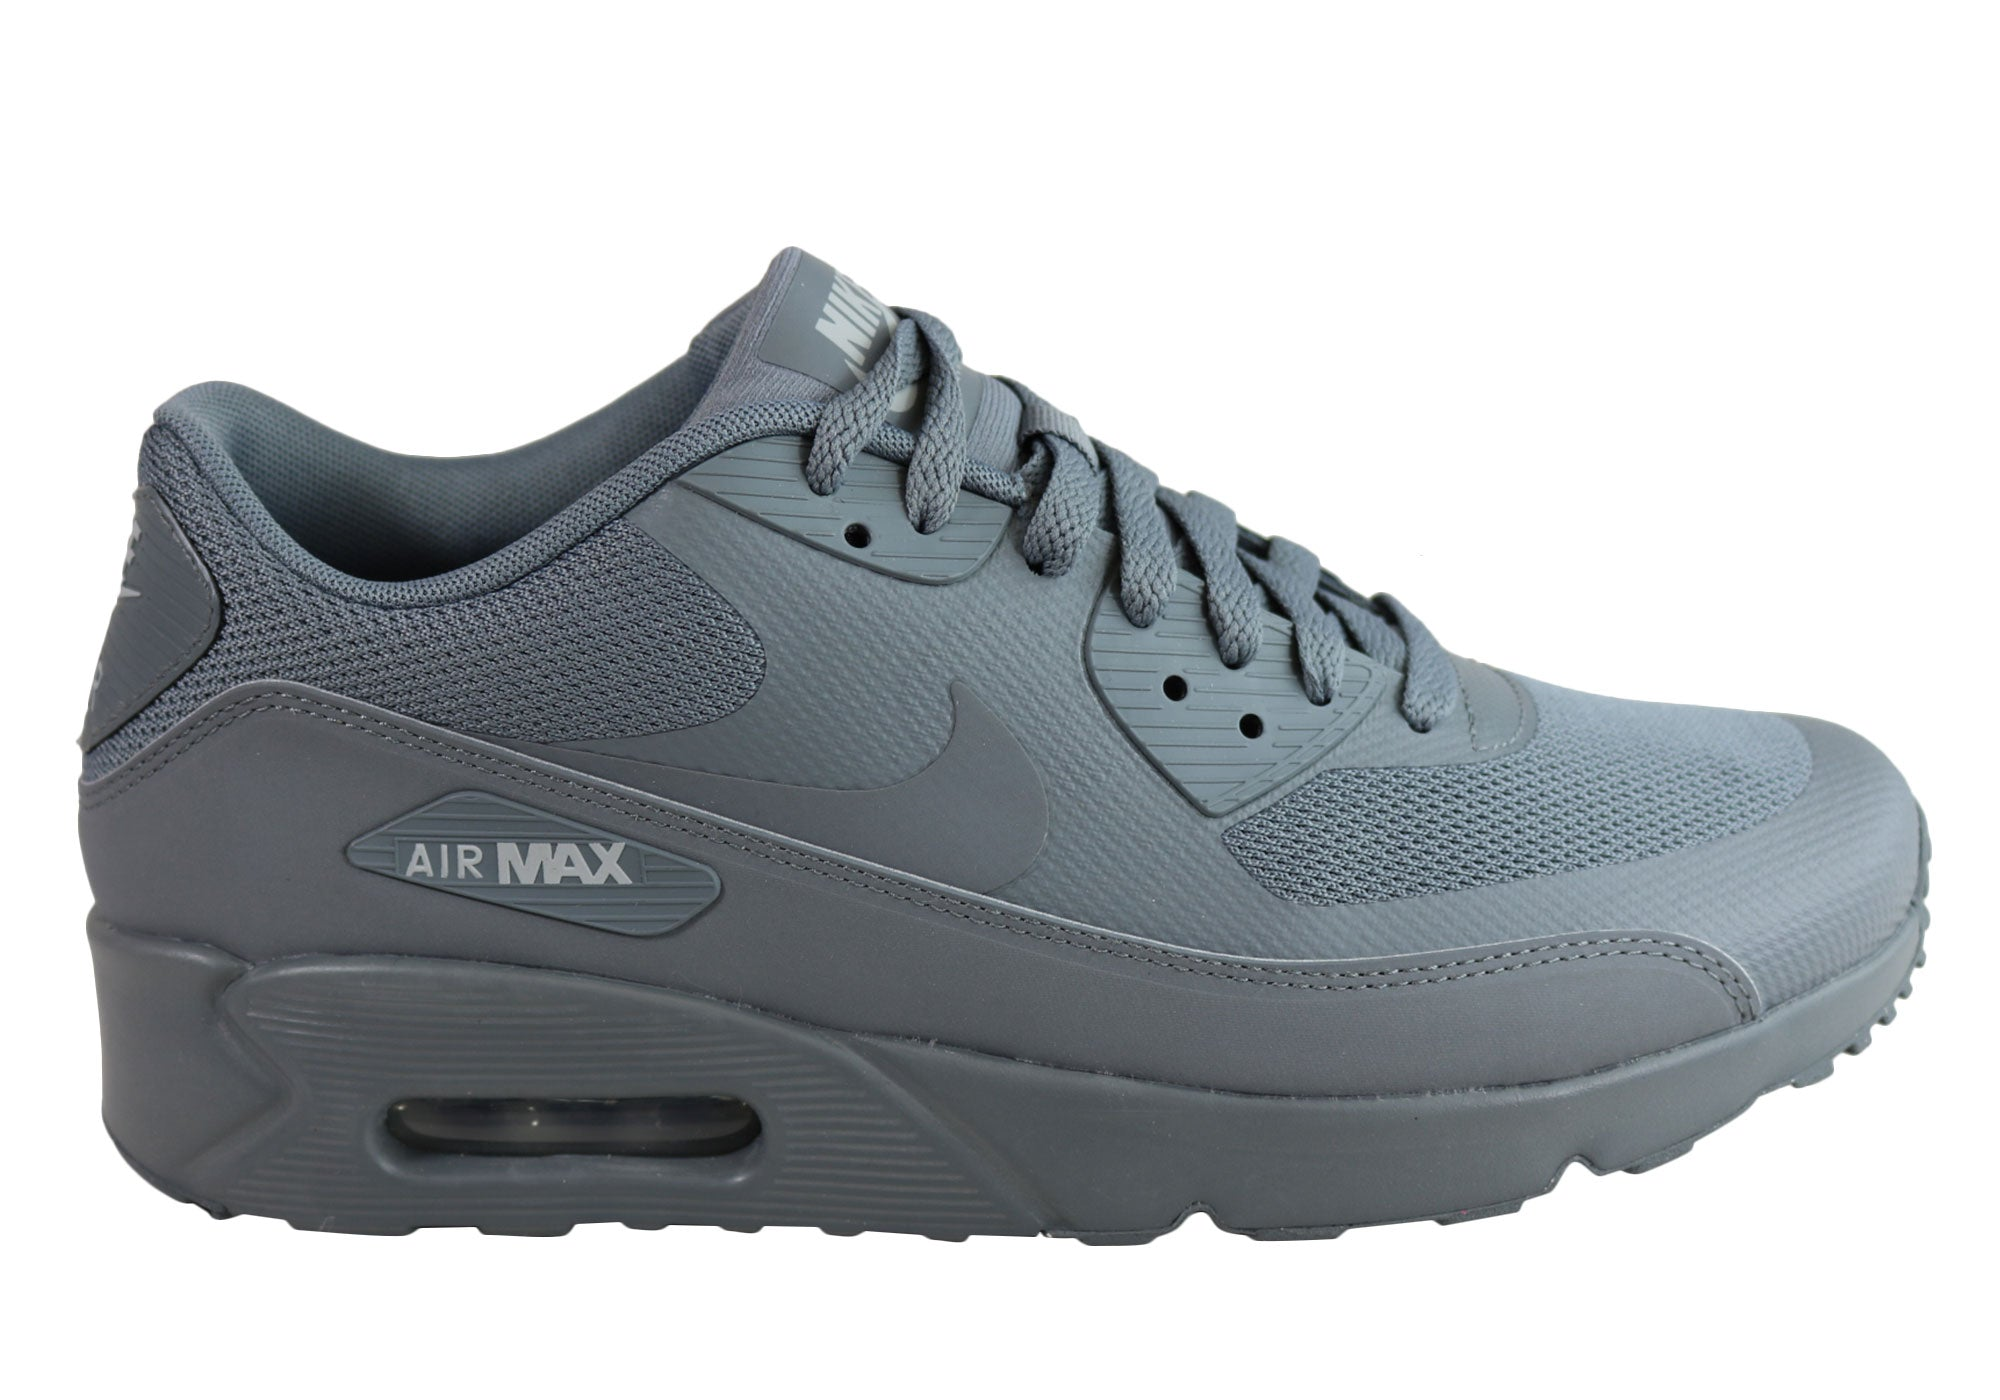 detailed look d79e8 972bf Details about NEW NIKE MENS AIR MAX 90 ULTRA 2.0 ESSENTIAL TRAINERS SPORT  SHOES